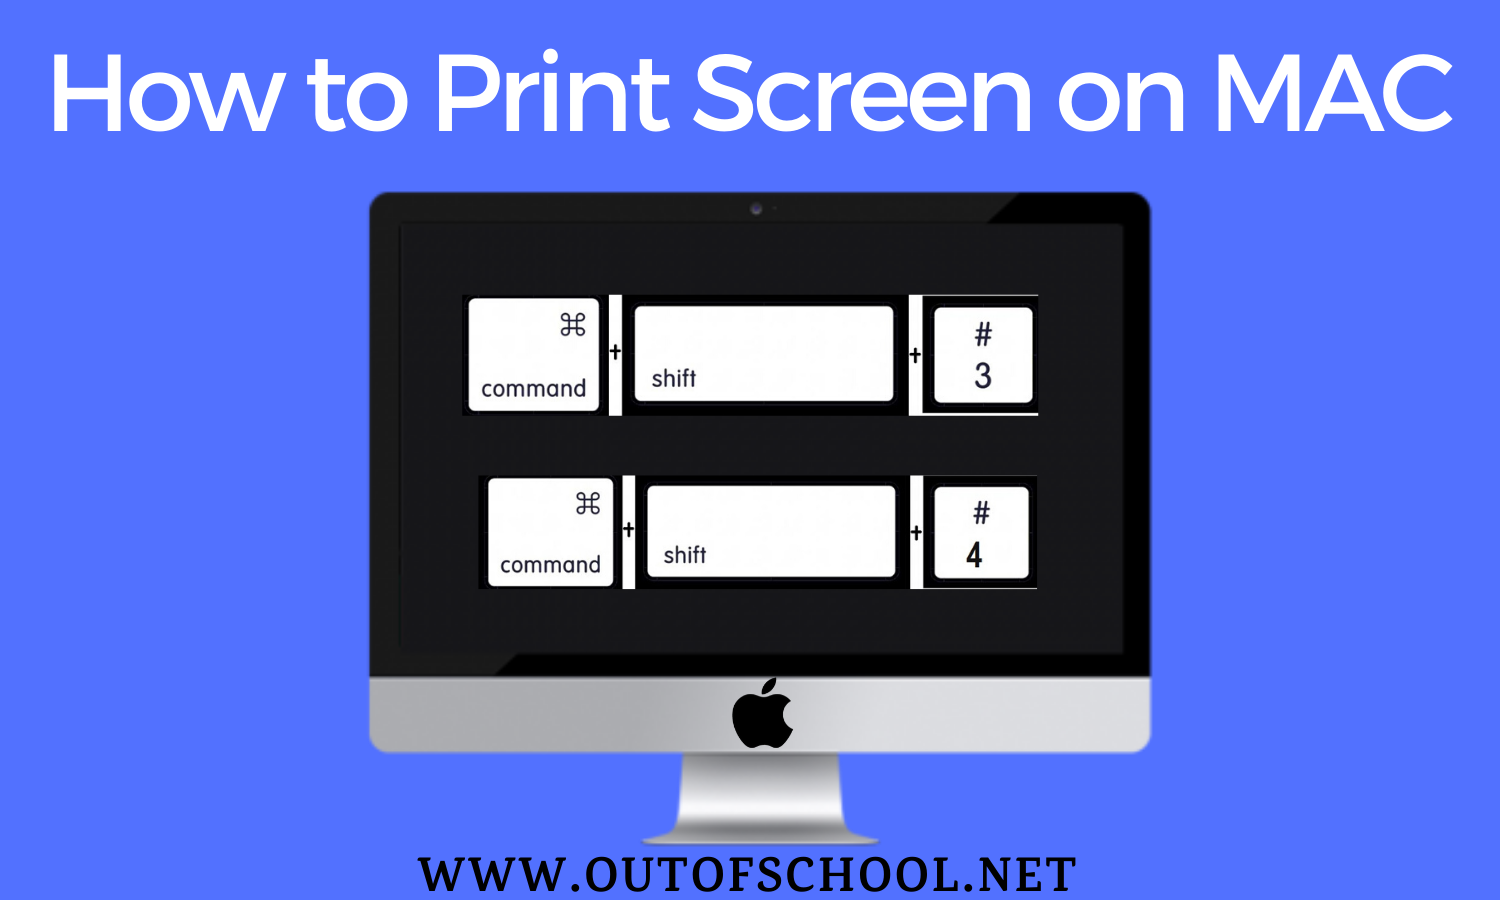 PRINT SCREEN ON MAC